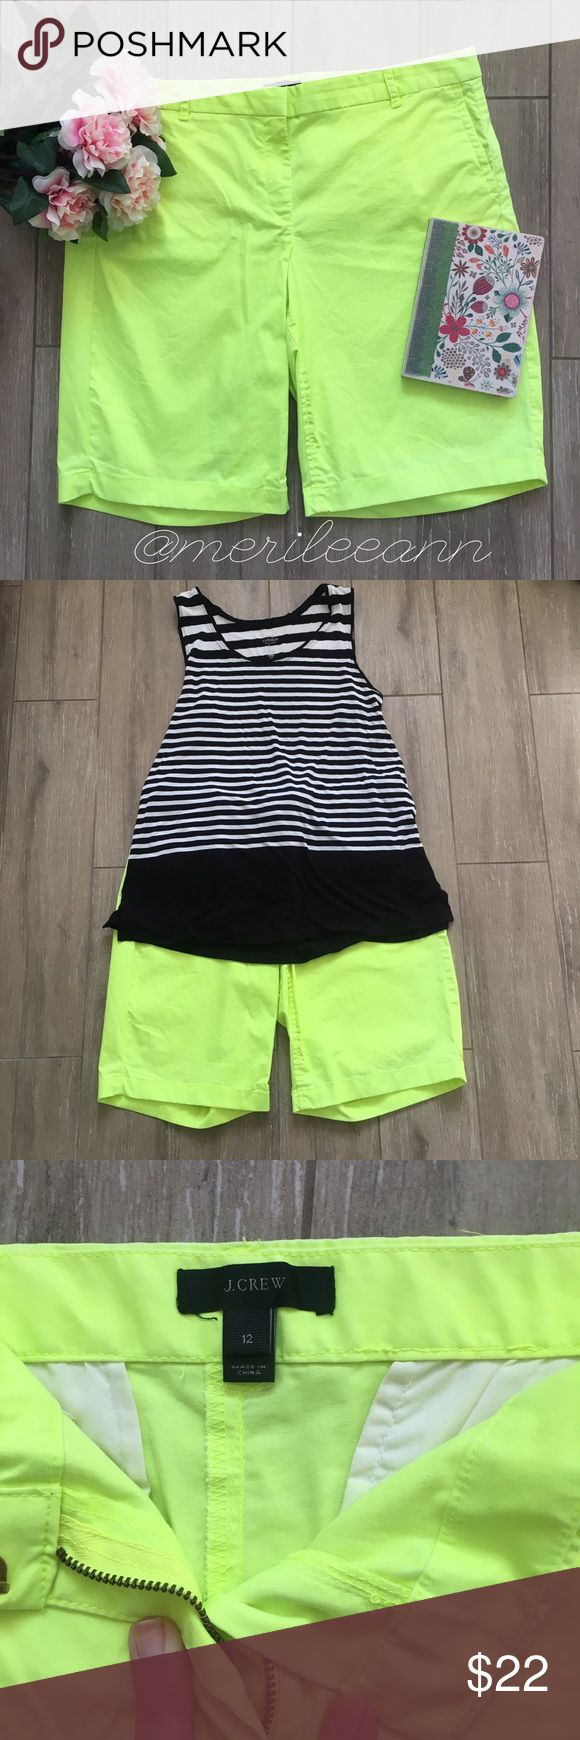 """J. Crew Bermuda Neon Yellow Shorts Brighten up your wardrobe with these fun, neon Bermuda shorts. Looks great with chambray, black, and white or fun patterns are great too. Lightweight. Pockets front and back. J. crew flagship, not factory. In excellent condition. ✨Measures: Inseam 9"""", 10"""" rise equals Mid to high rise on most. J. Crew Shorts Bermudas"""